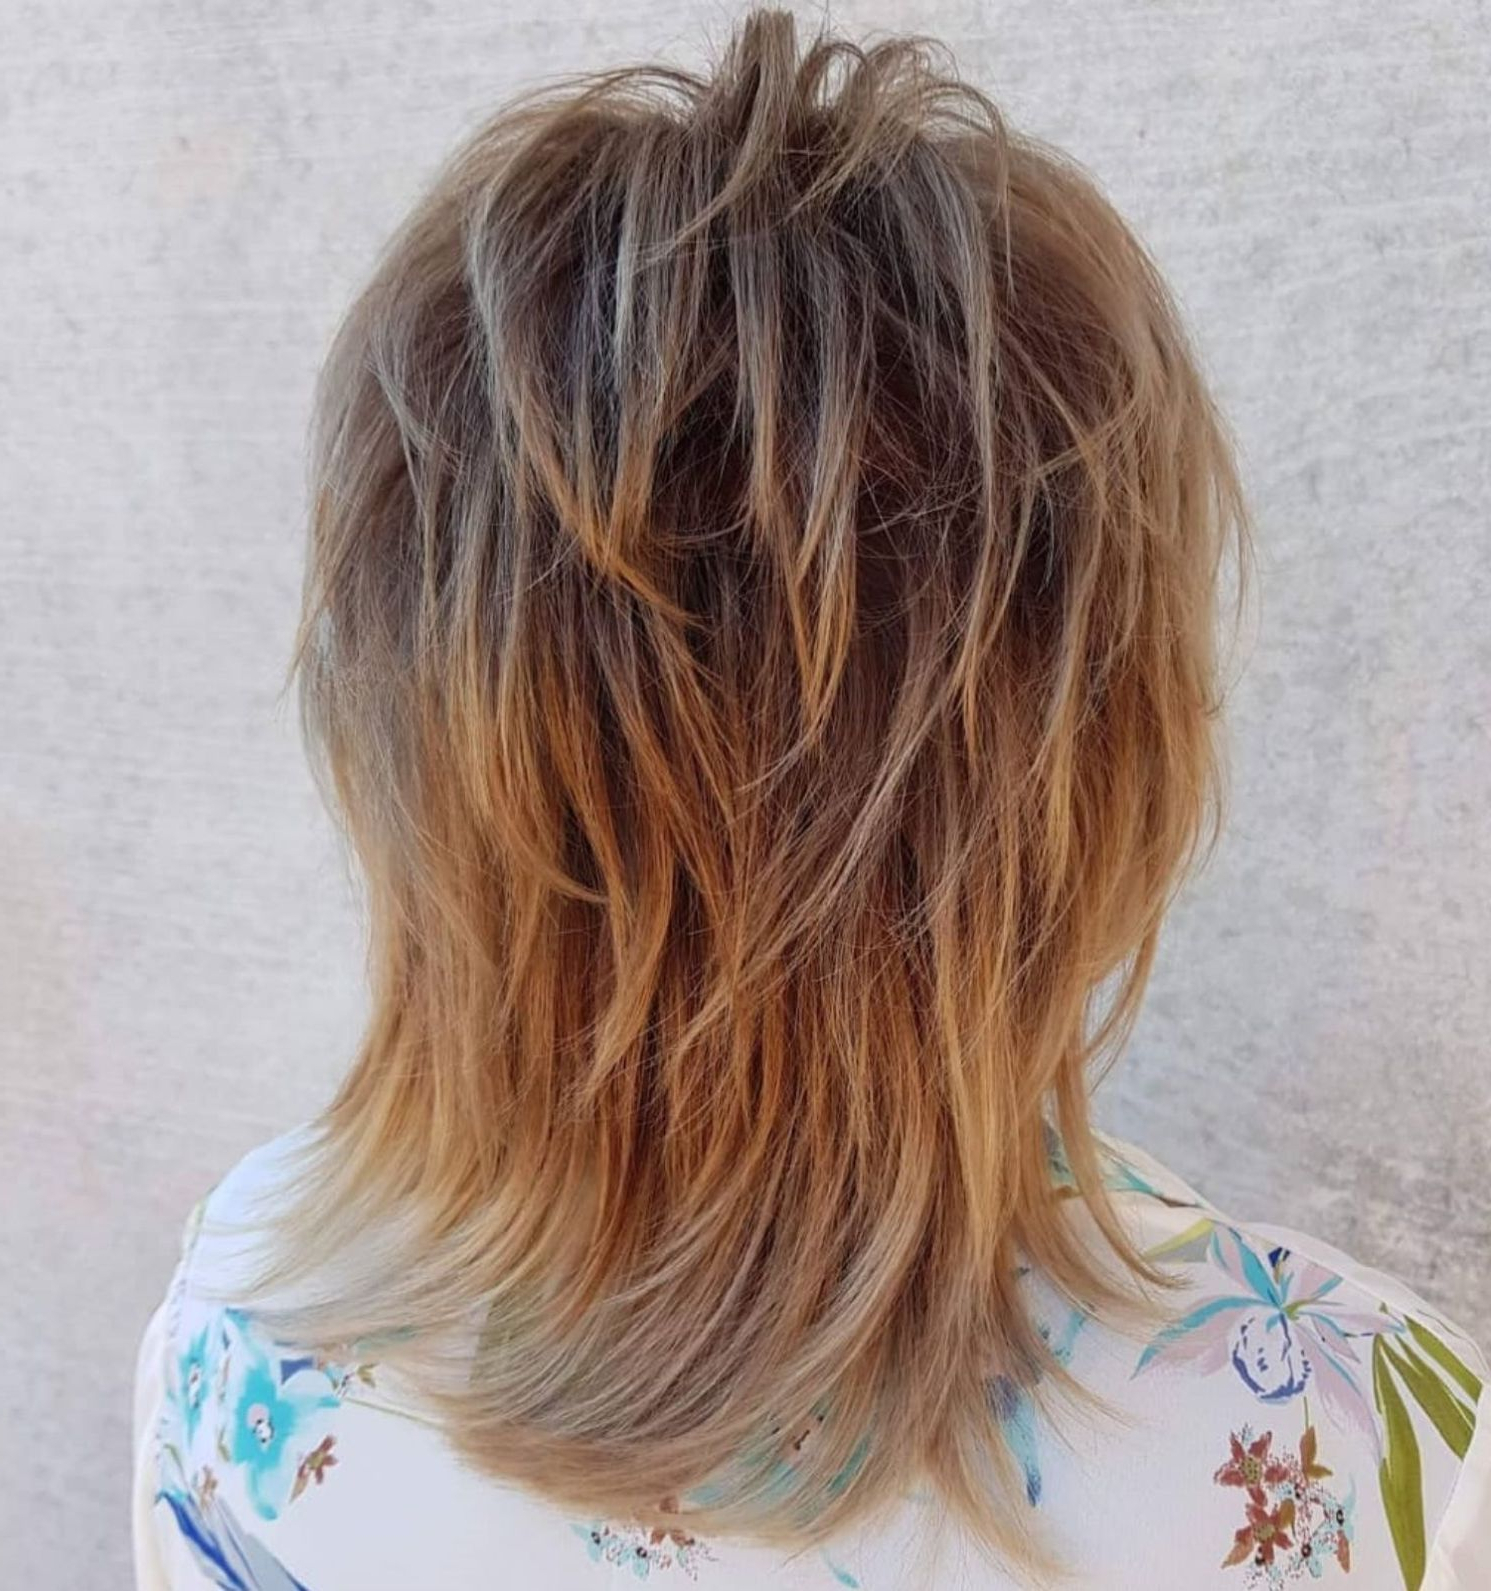 Pin On Short Shag Hairstyles Within Famous Bronde Shaggy Hairstyles With Feathered Layers (Gallery 20 of 20)